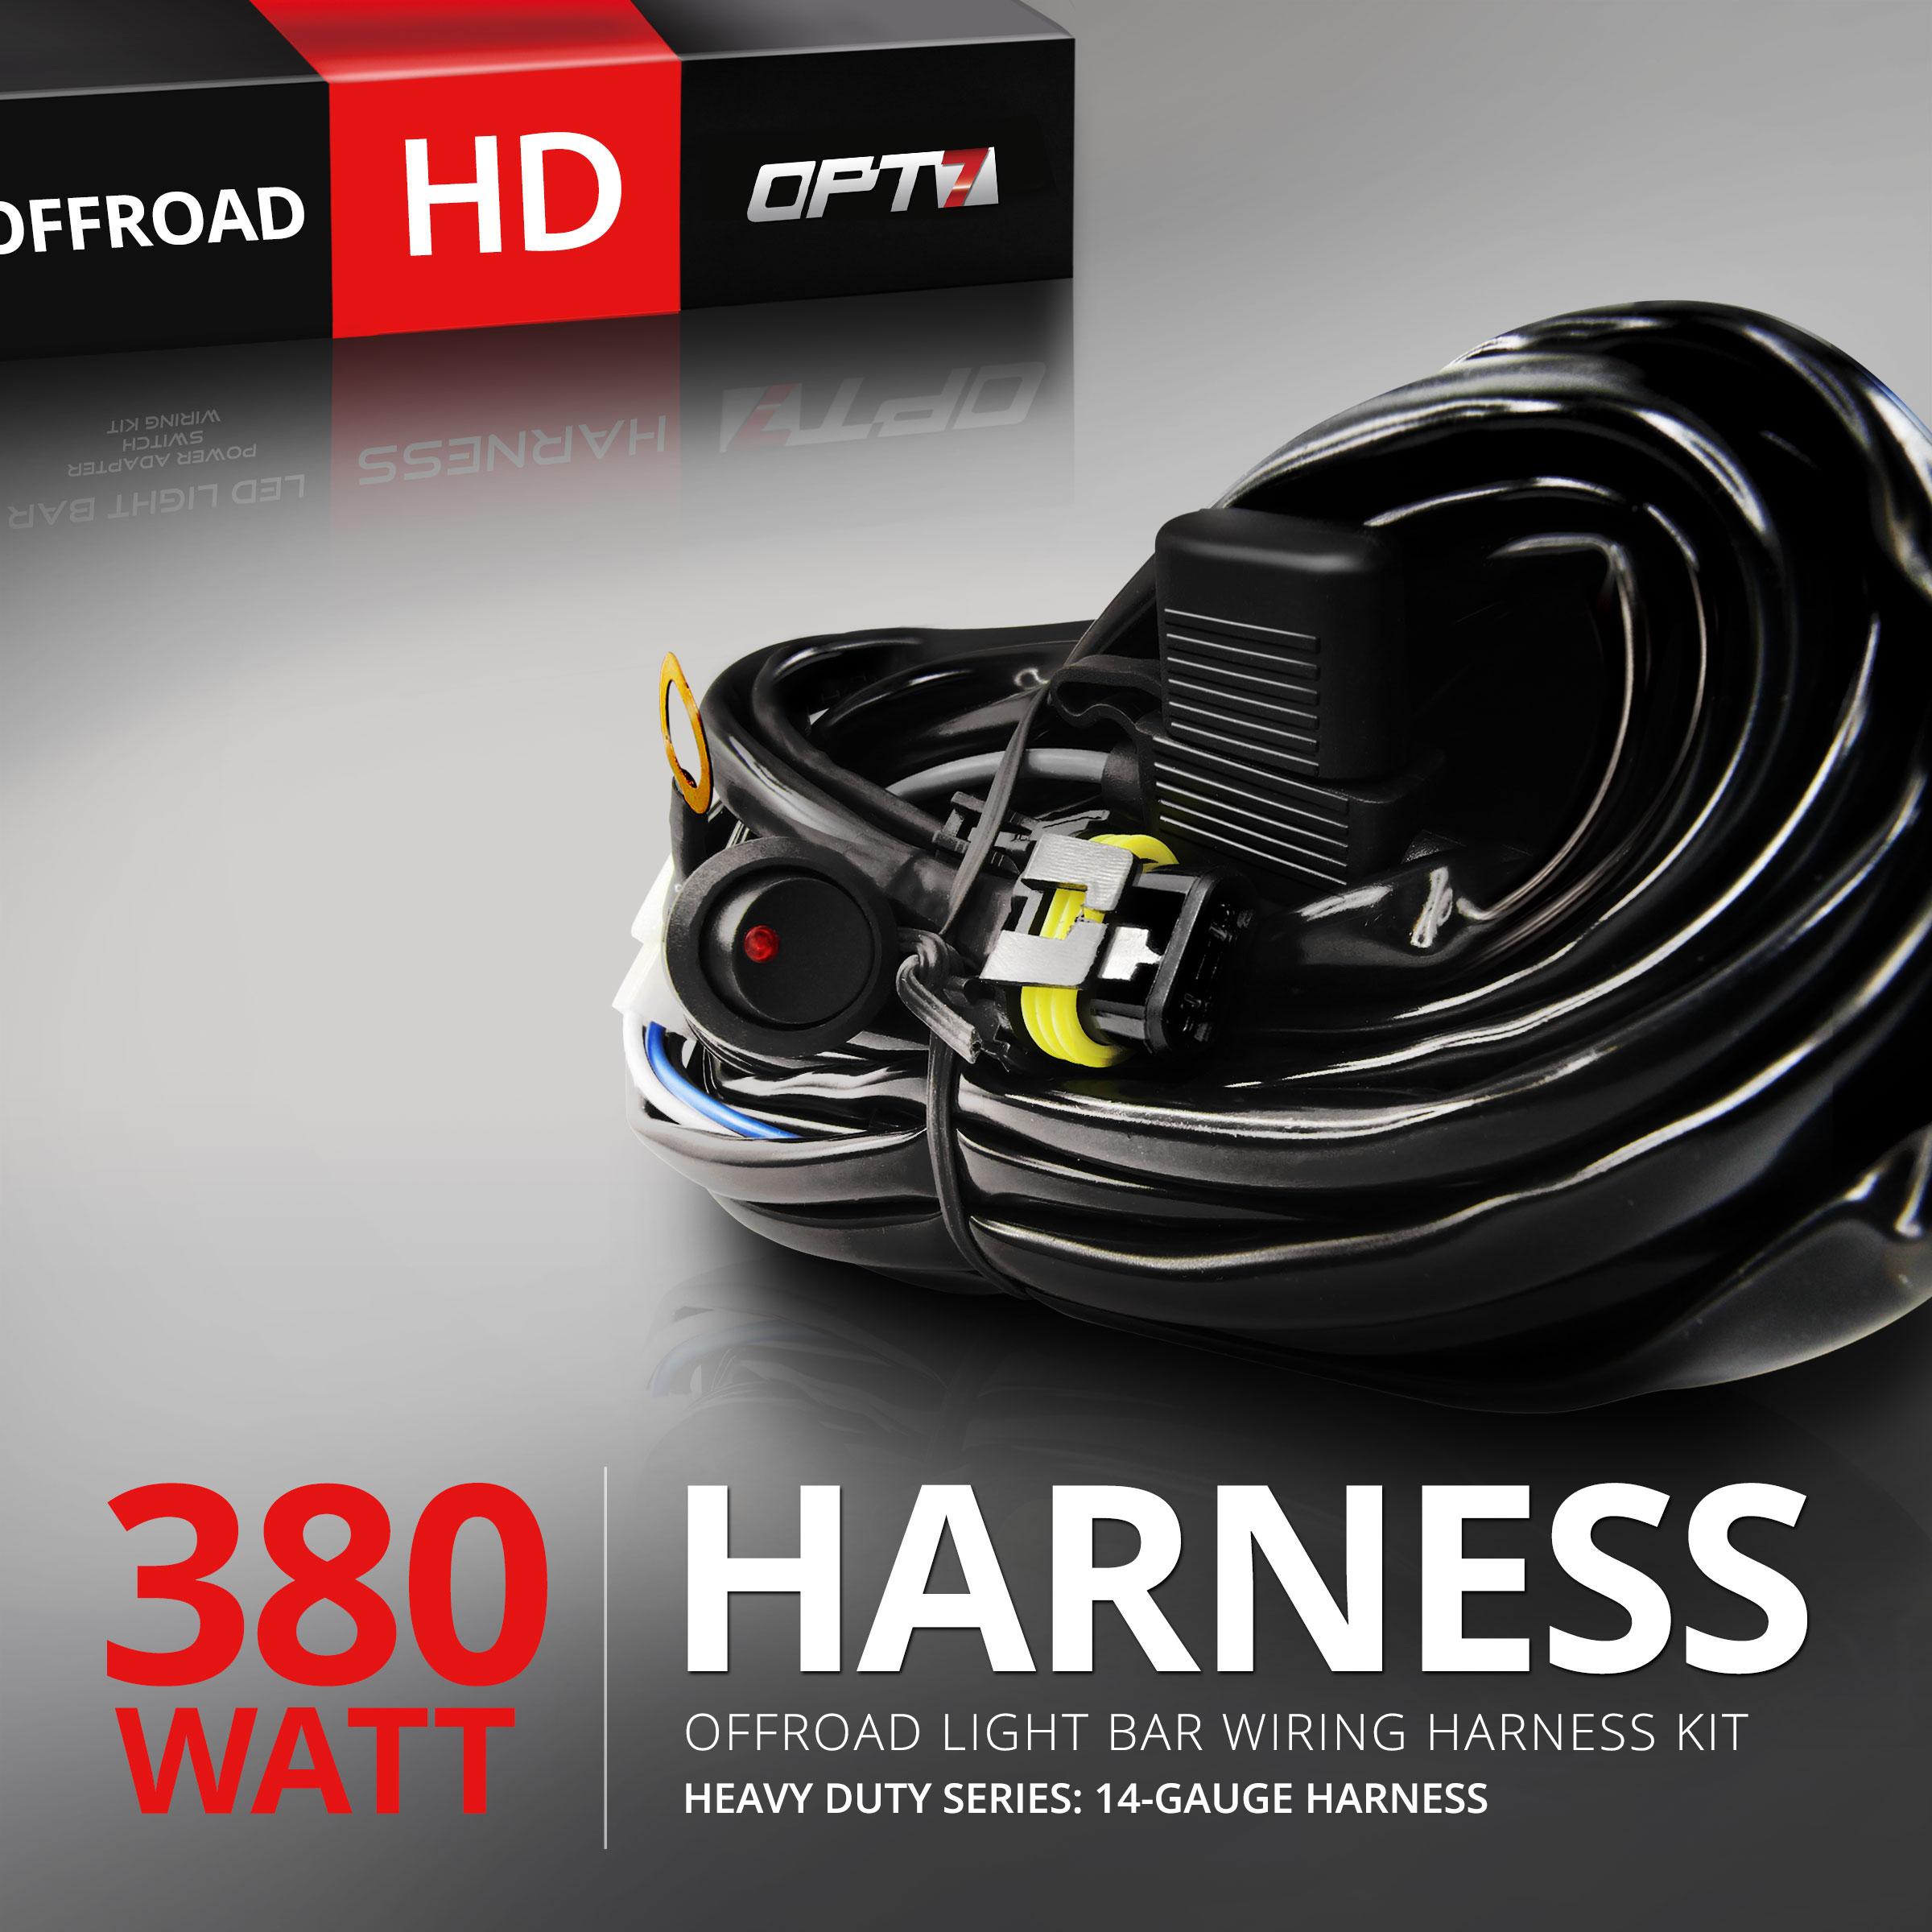 OPT7® 14 Gauge 380W Wiring Harness w/Switch for Off Road LED LIGHT Bar - 11ft Dimmer Strobe 80ft Range Plug and Play Waterproof Relay